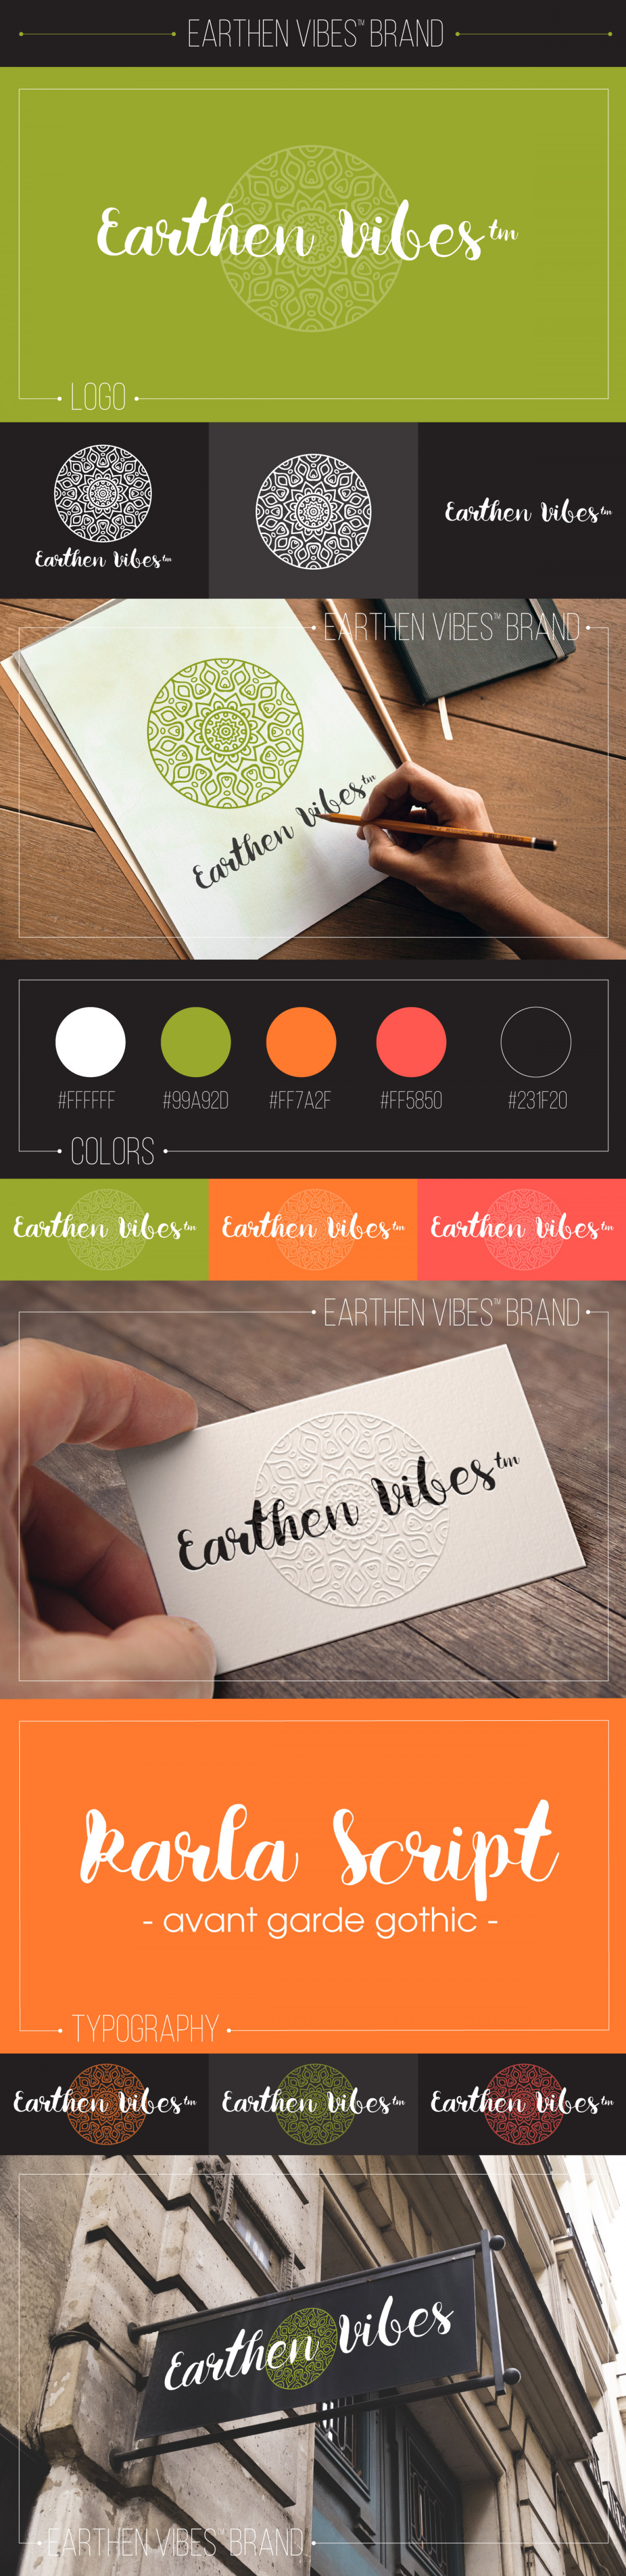 Earthen Vibes Brand by Maxwell Alexander Infographic